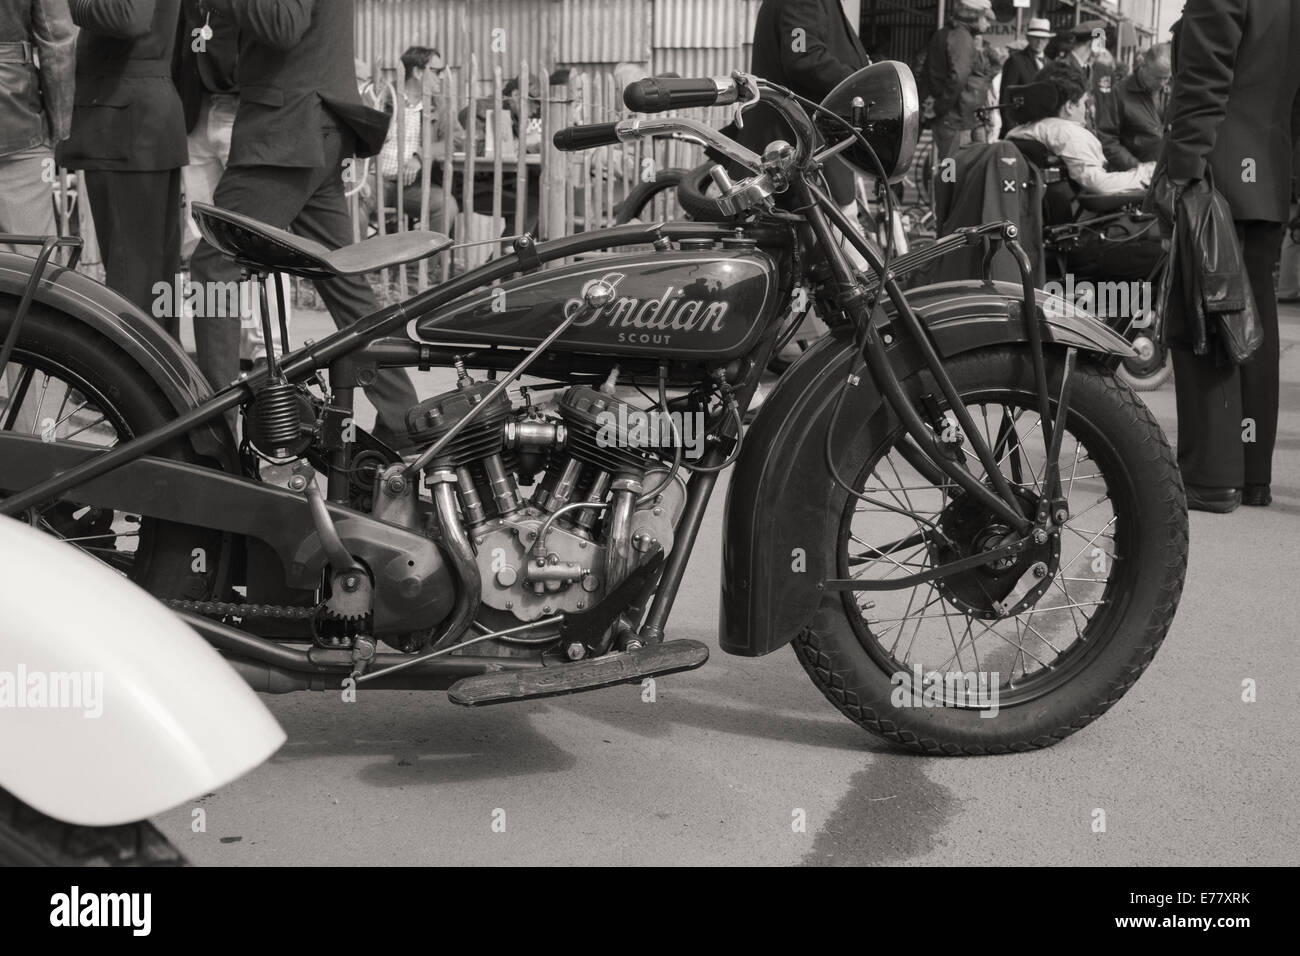 vintage indian motorcycle stock photos & vintage indian motorcycle